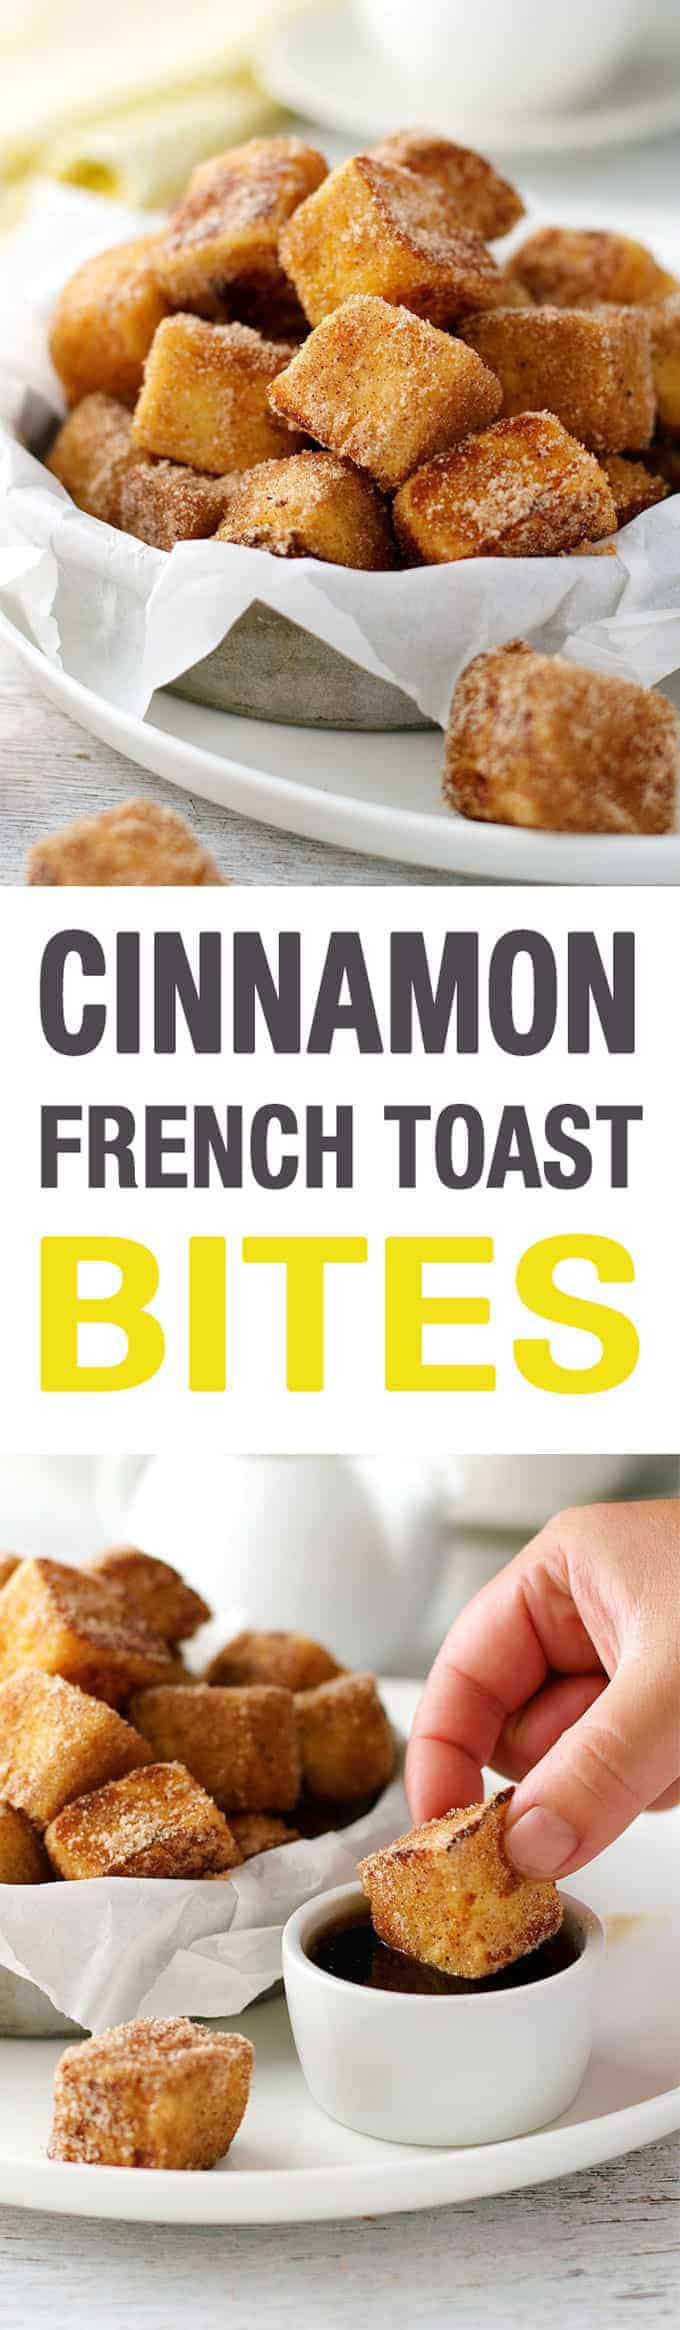 "French Toast Bites - fun to make, you kind of ""sauté"" them! And fun..."